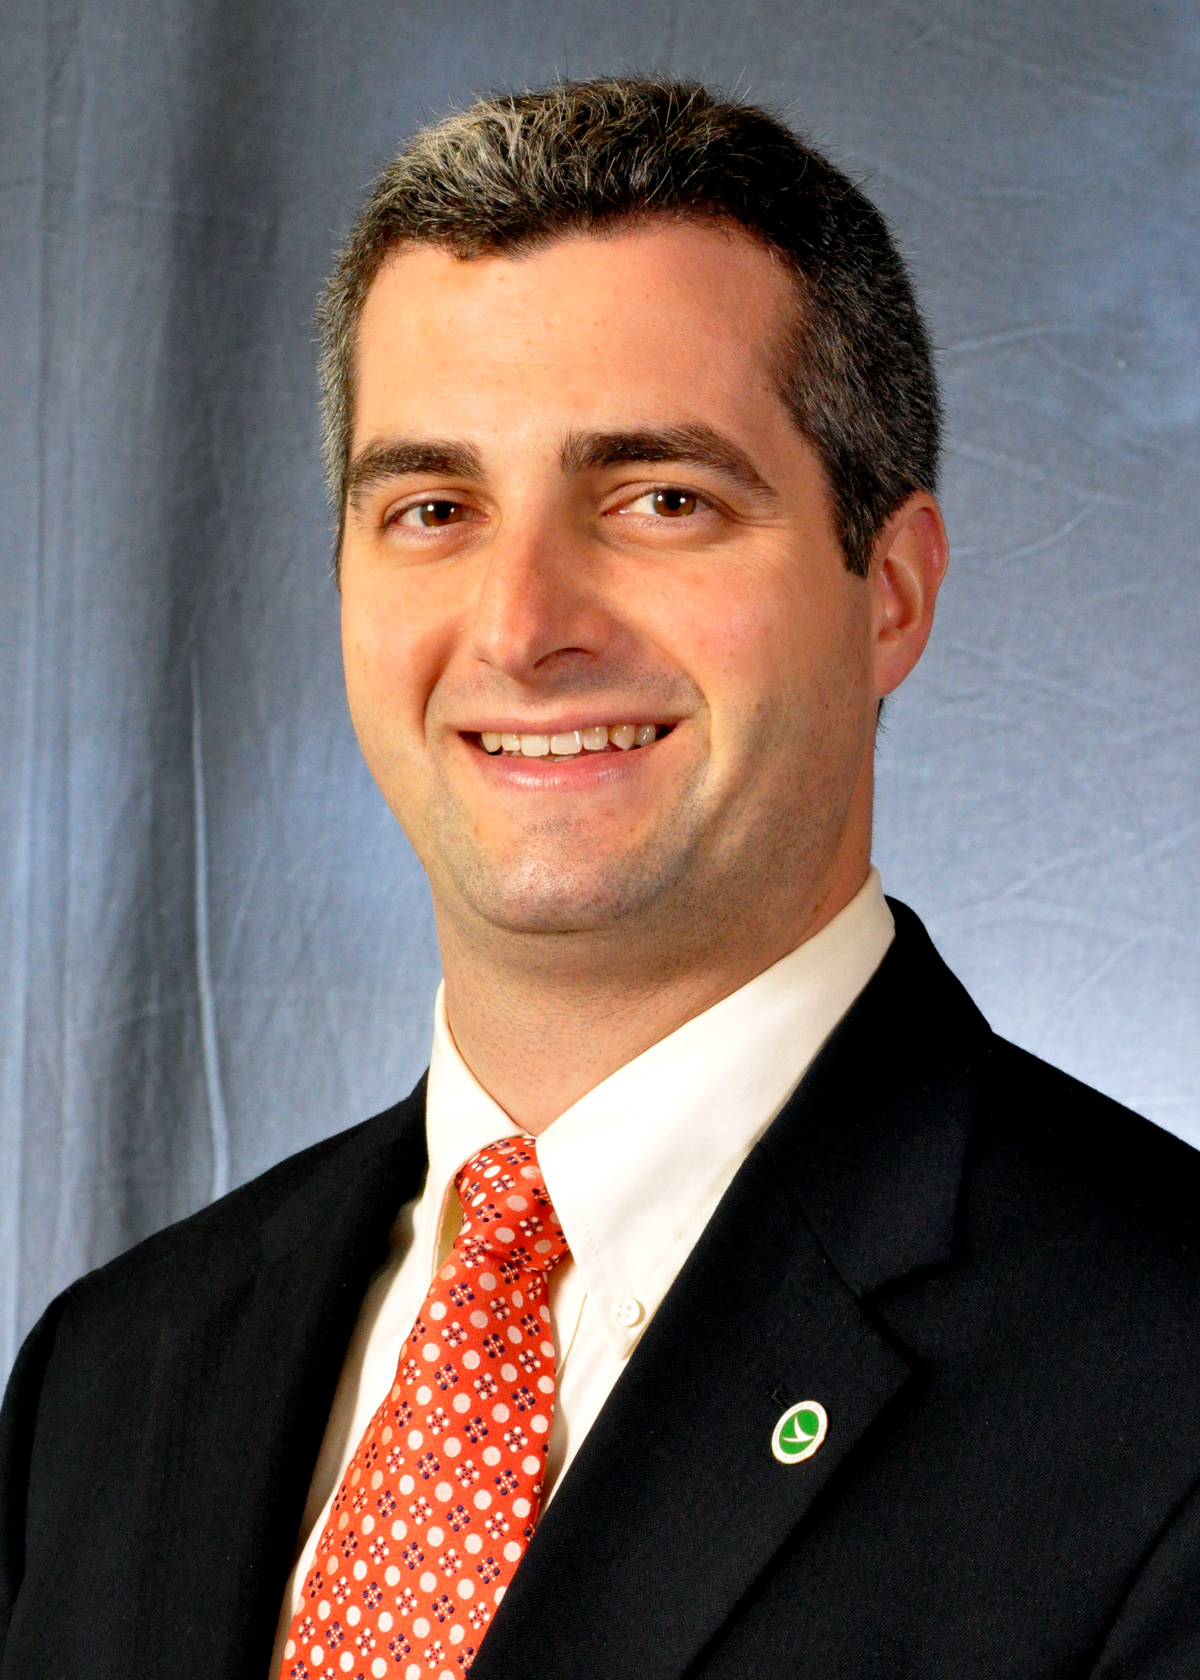 Andrew Bremer, Managing Director of Local Affairs, Drive Ohio